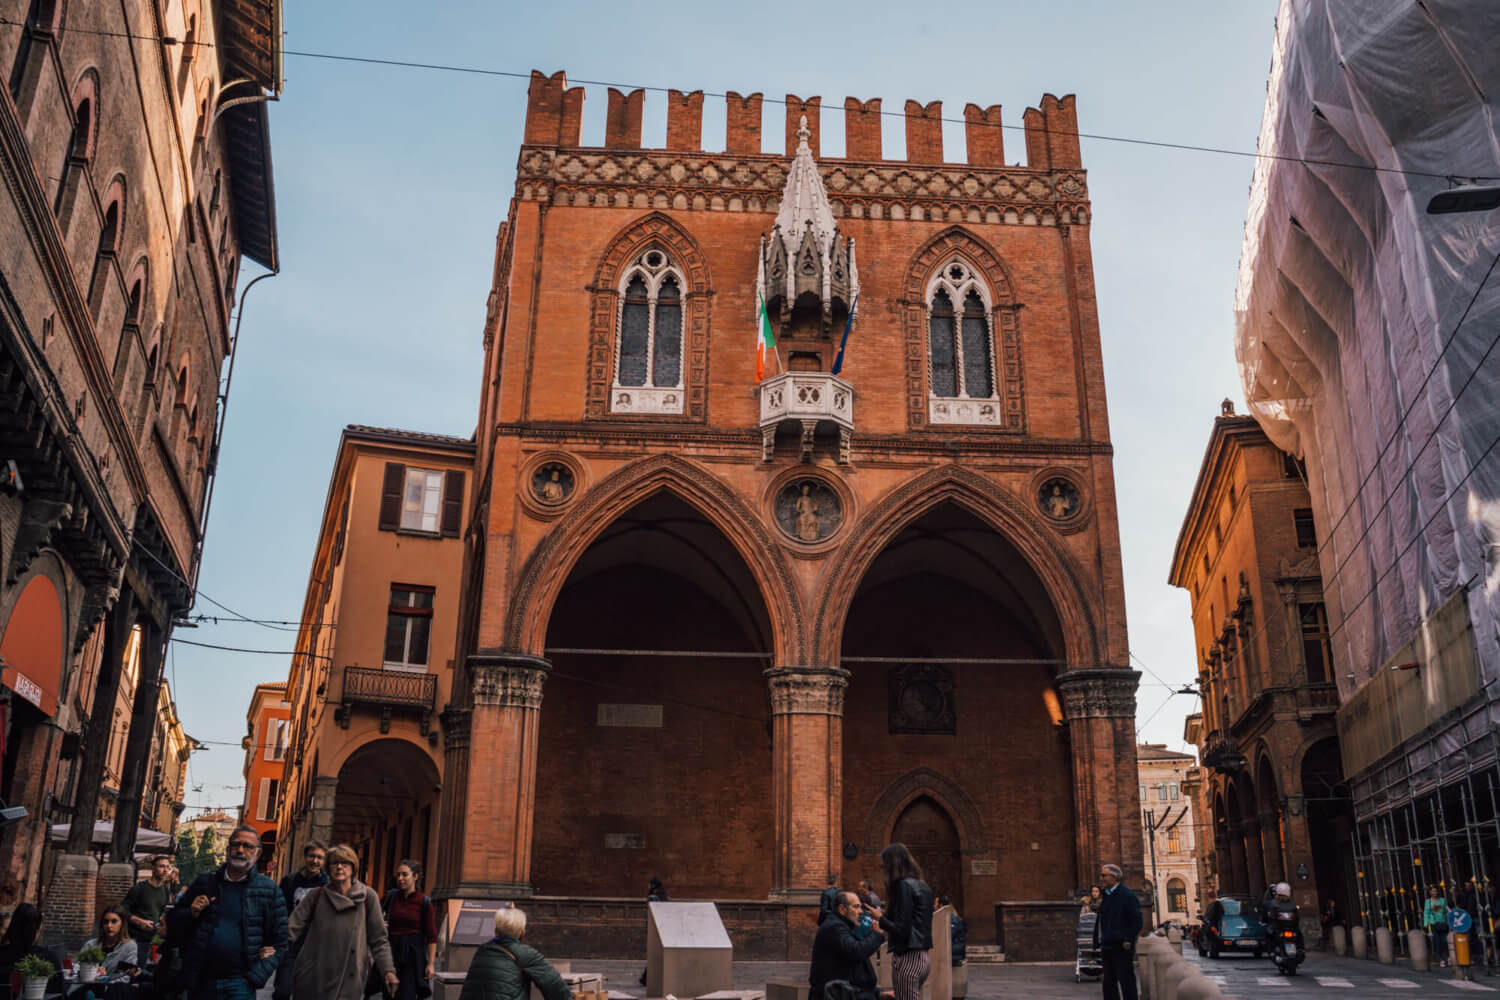 The Chamber of Commerce in Bologna, Italy